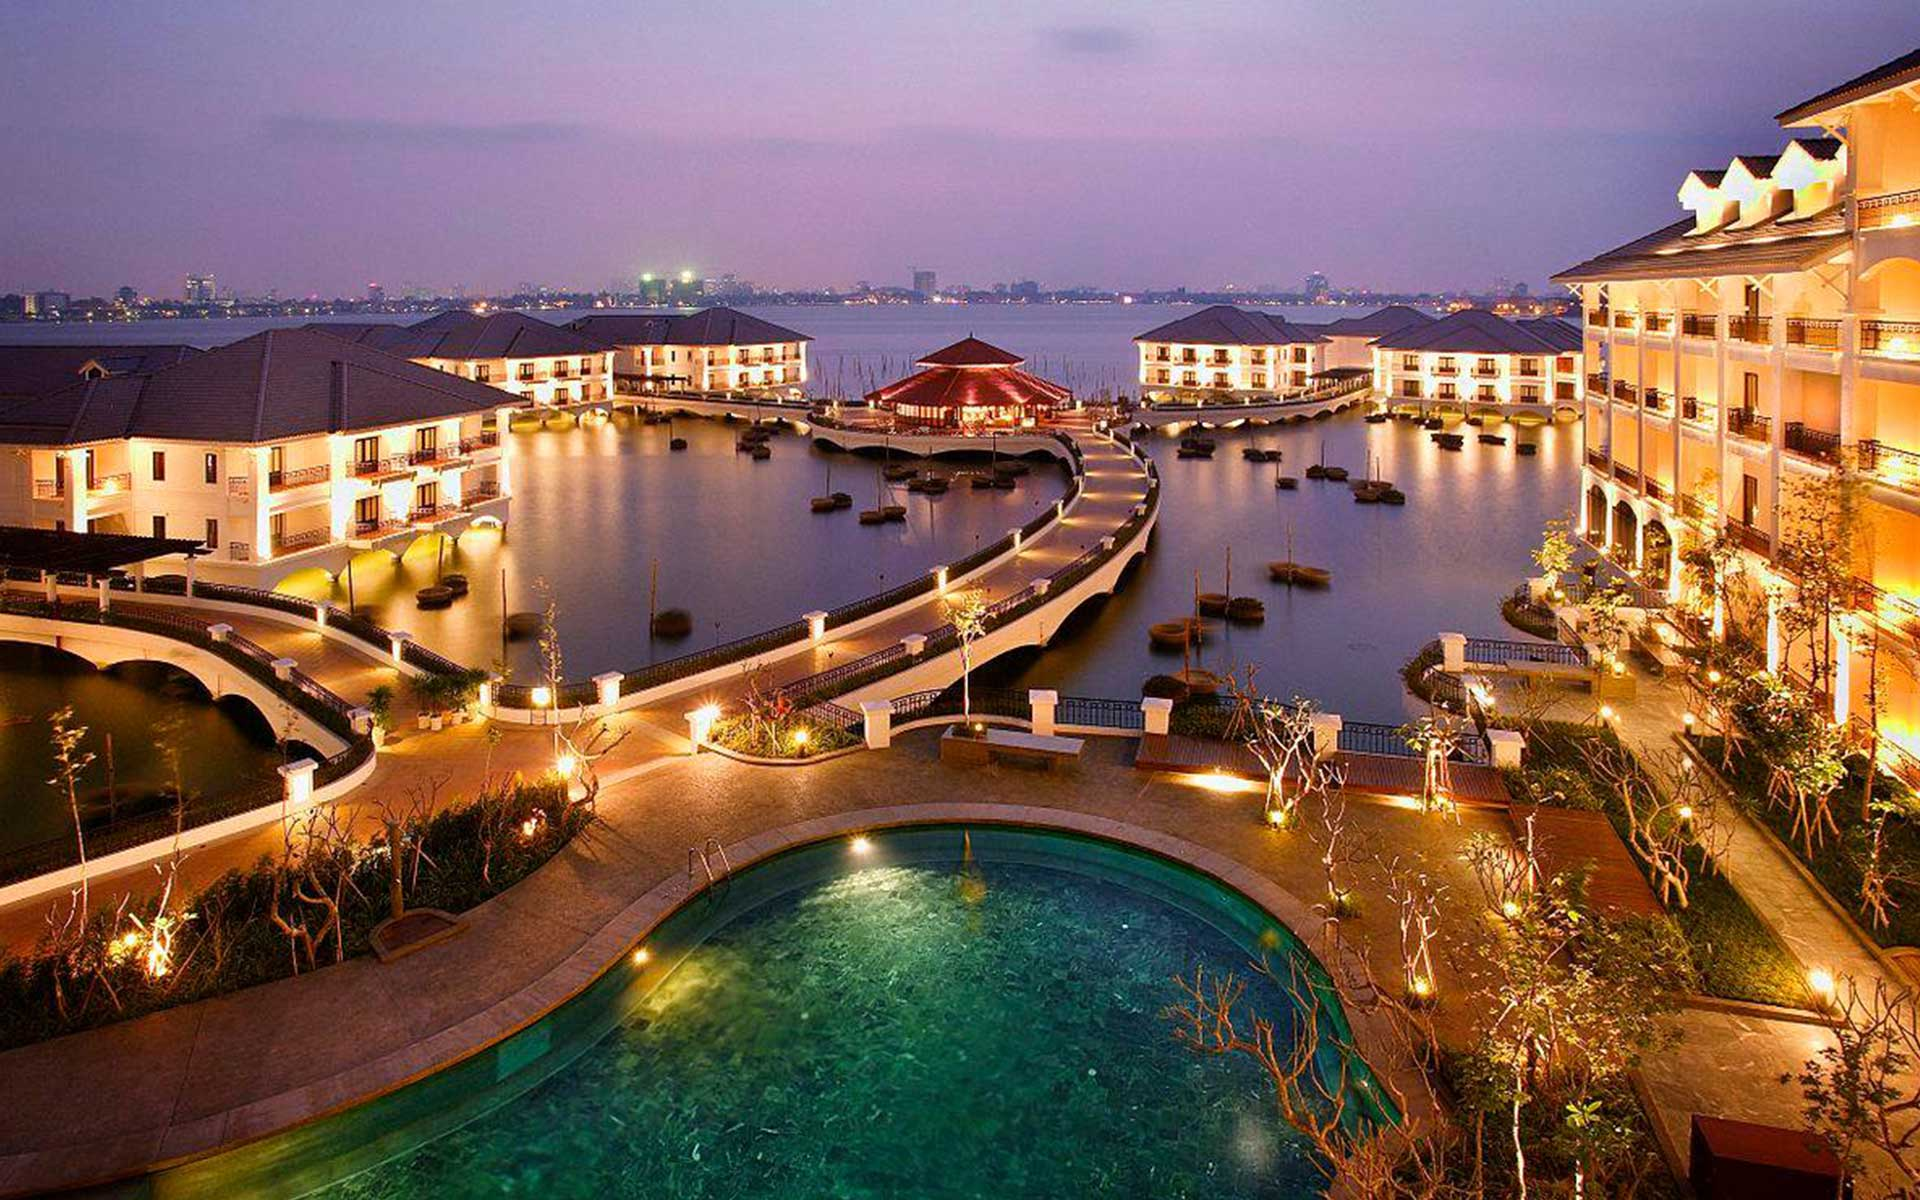 InterContinental Hanoi Westlake - the most luxurious hotel in Hanoi